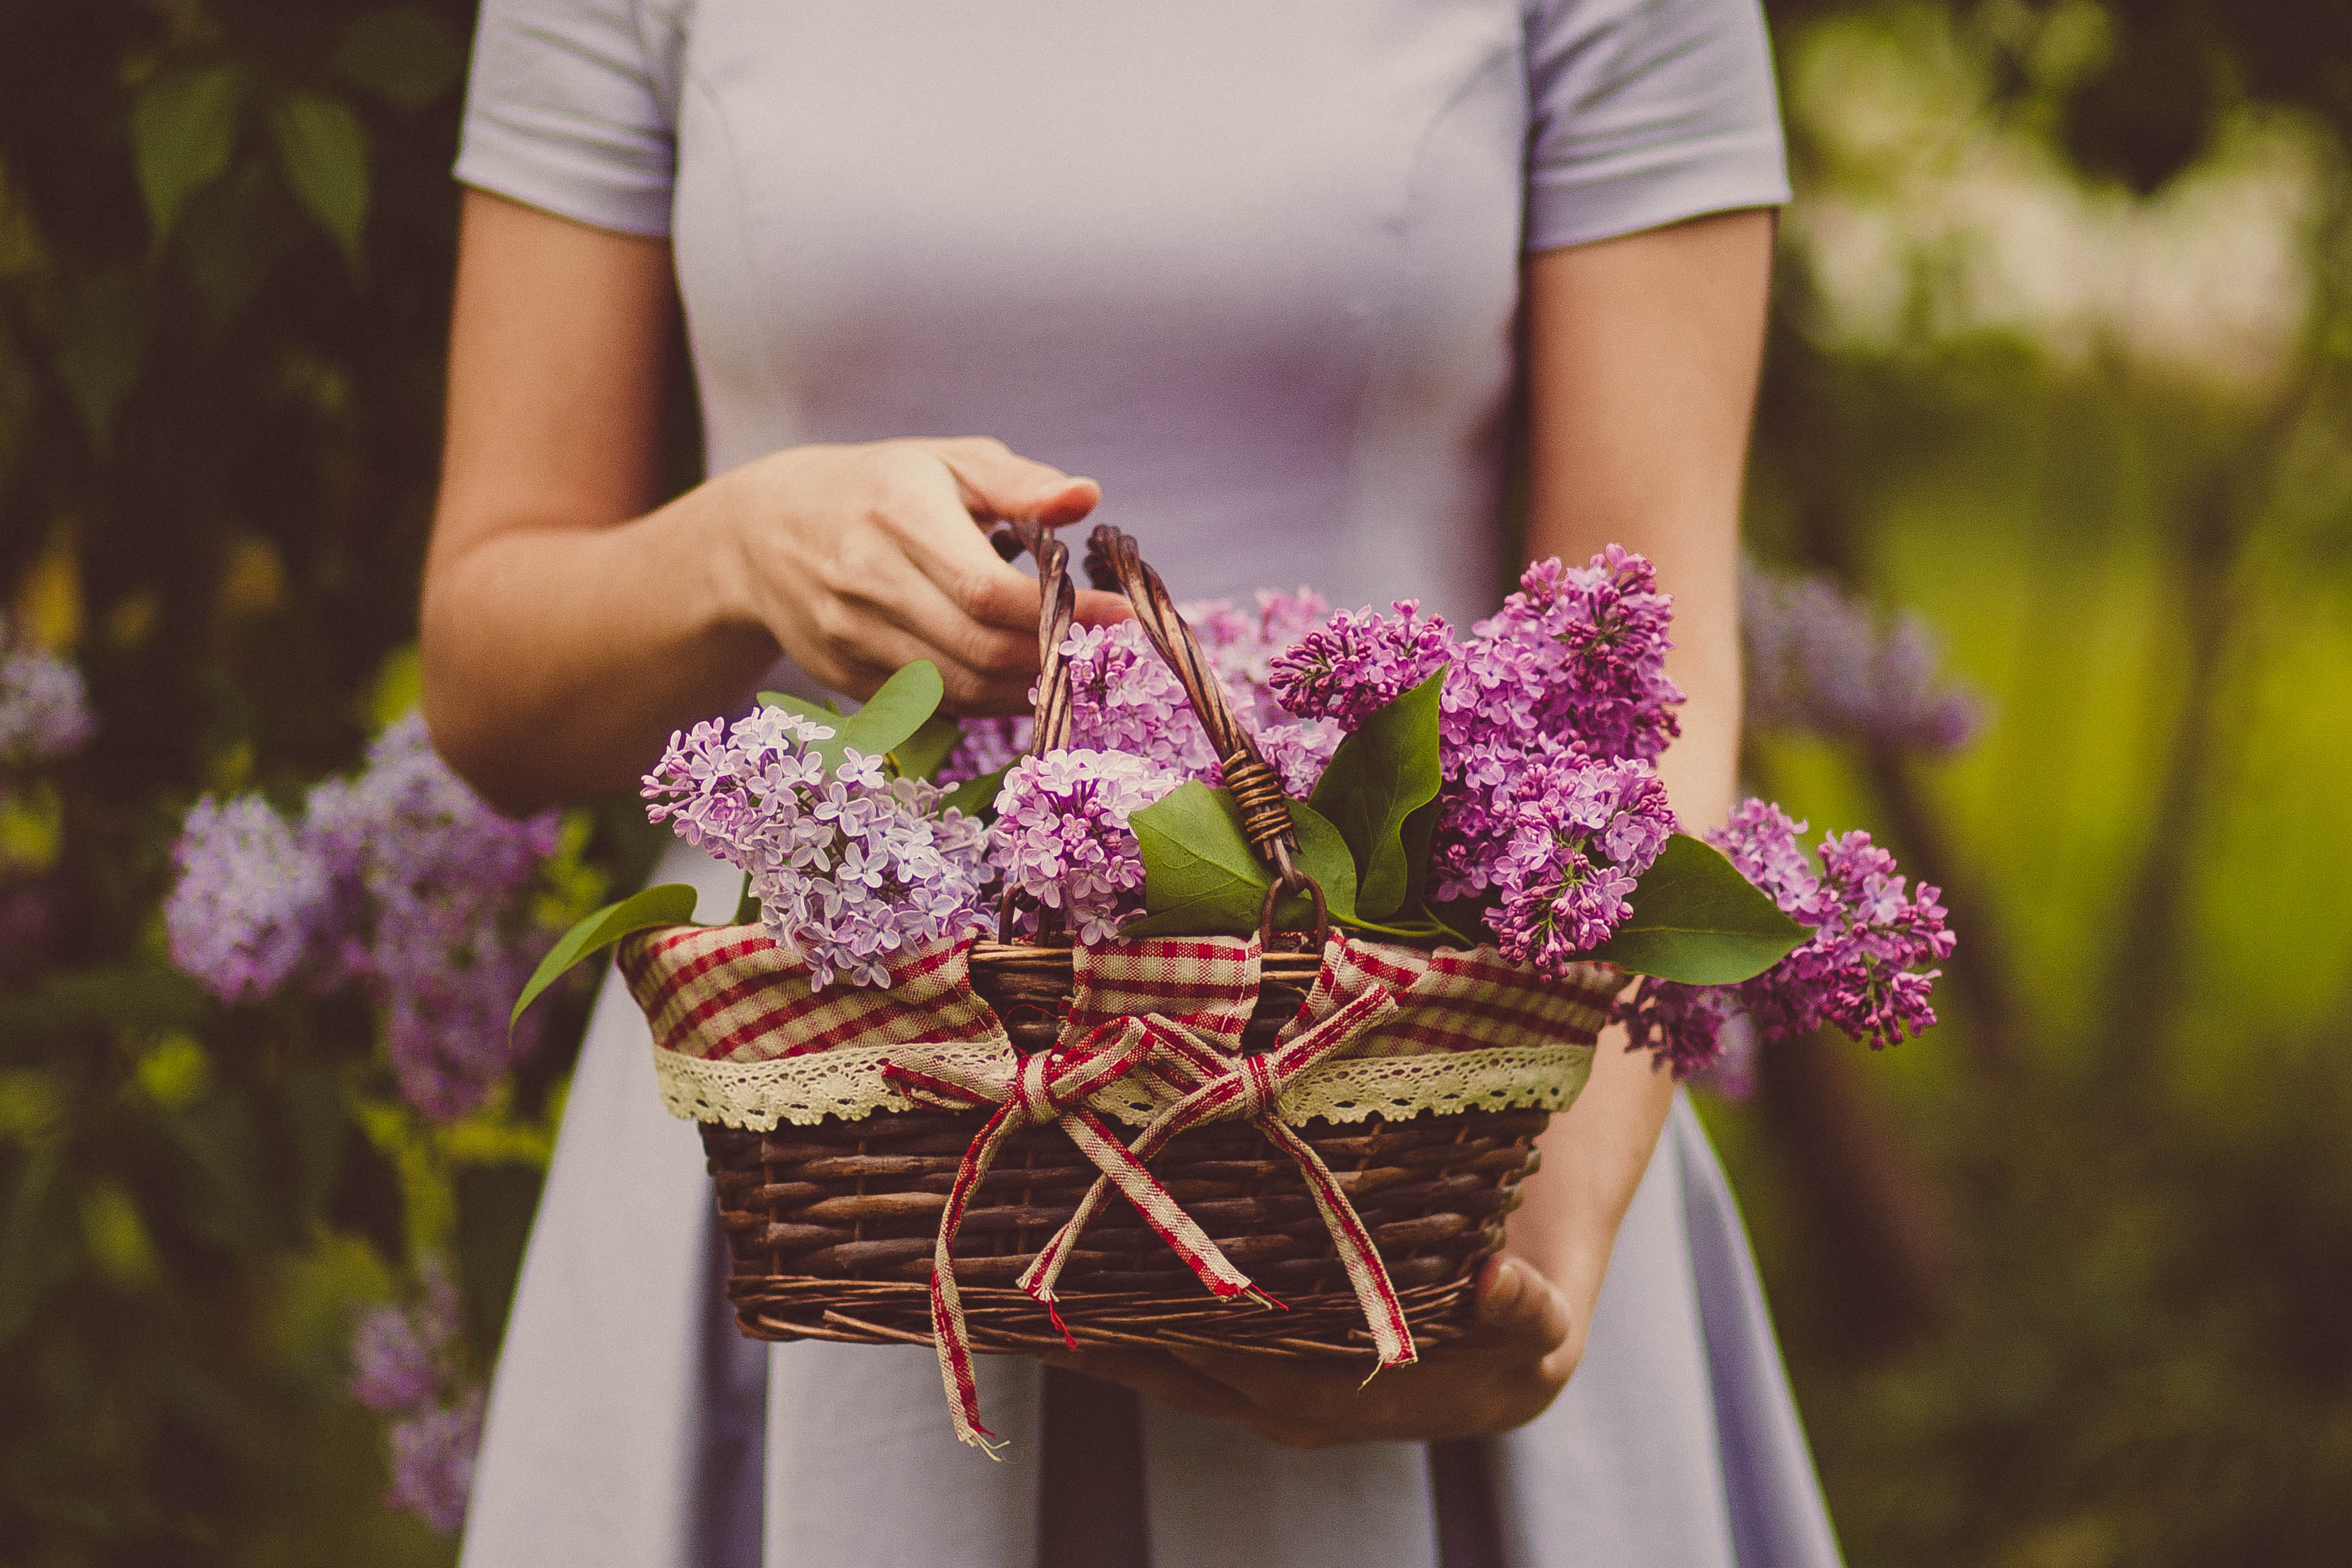 A woman carries a basket of flowers